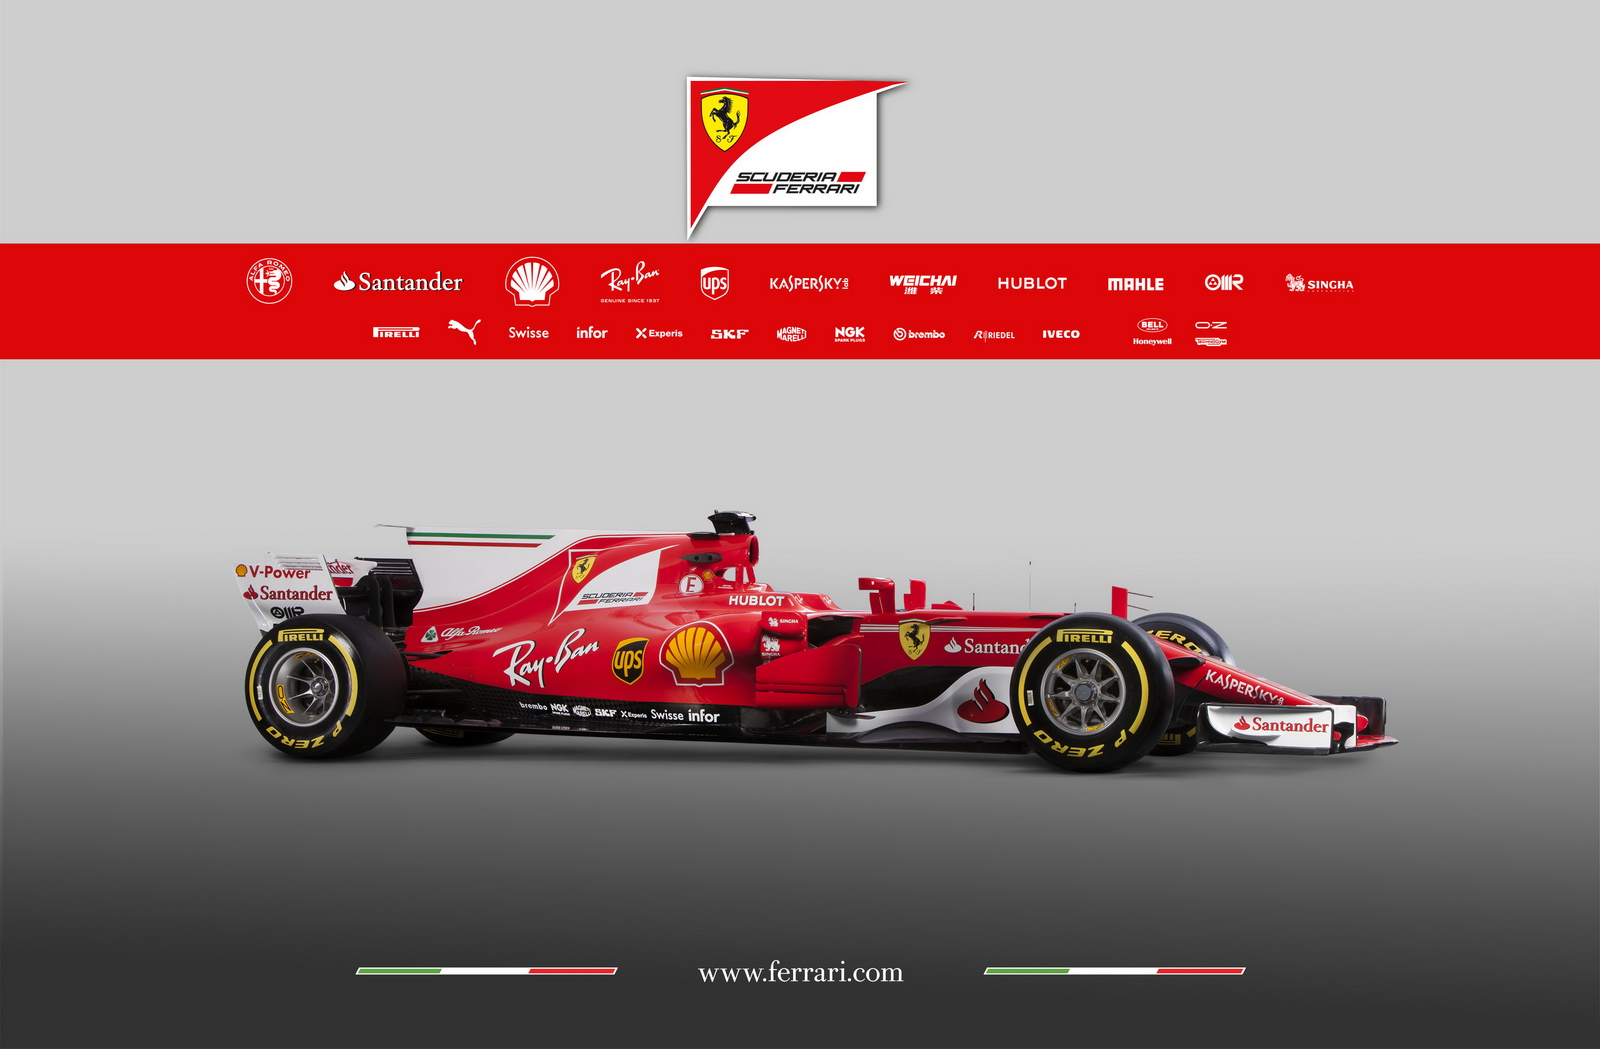 Ferrari sh70 h born out of a regulation change formula 1 try watching this video on youtube or enable javascript if it is disabled in your browser voltagebd Images